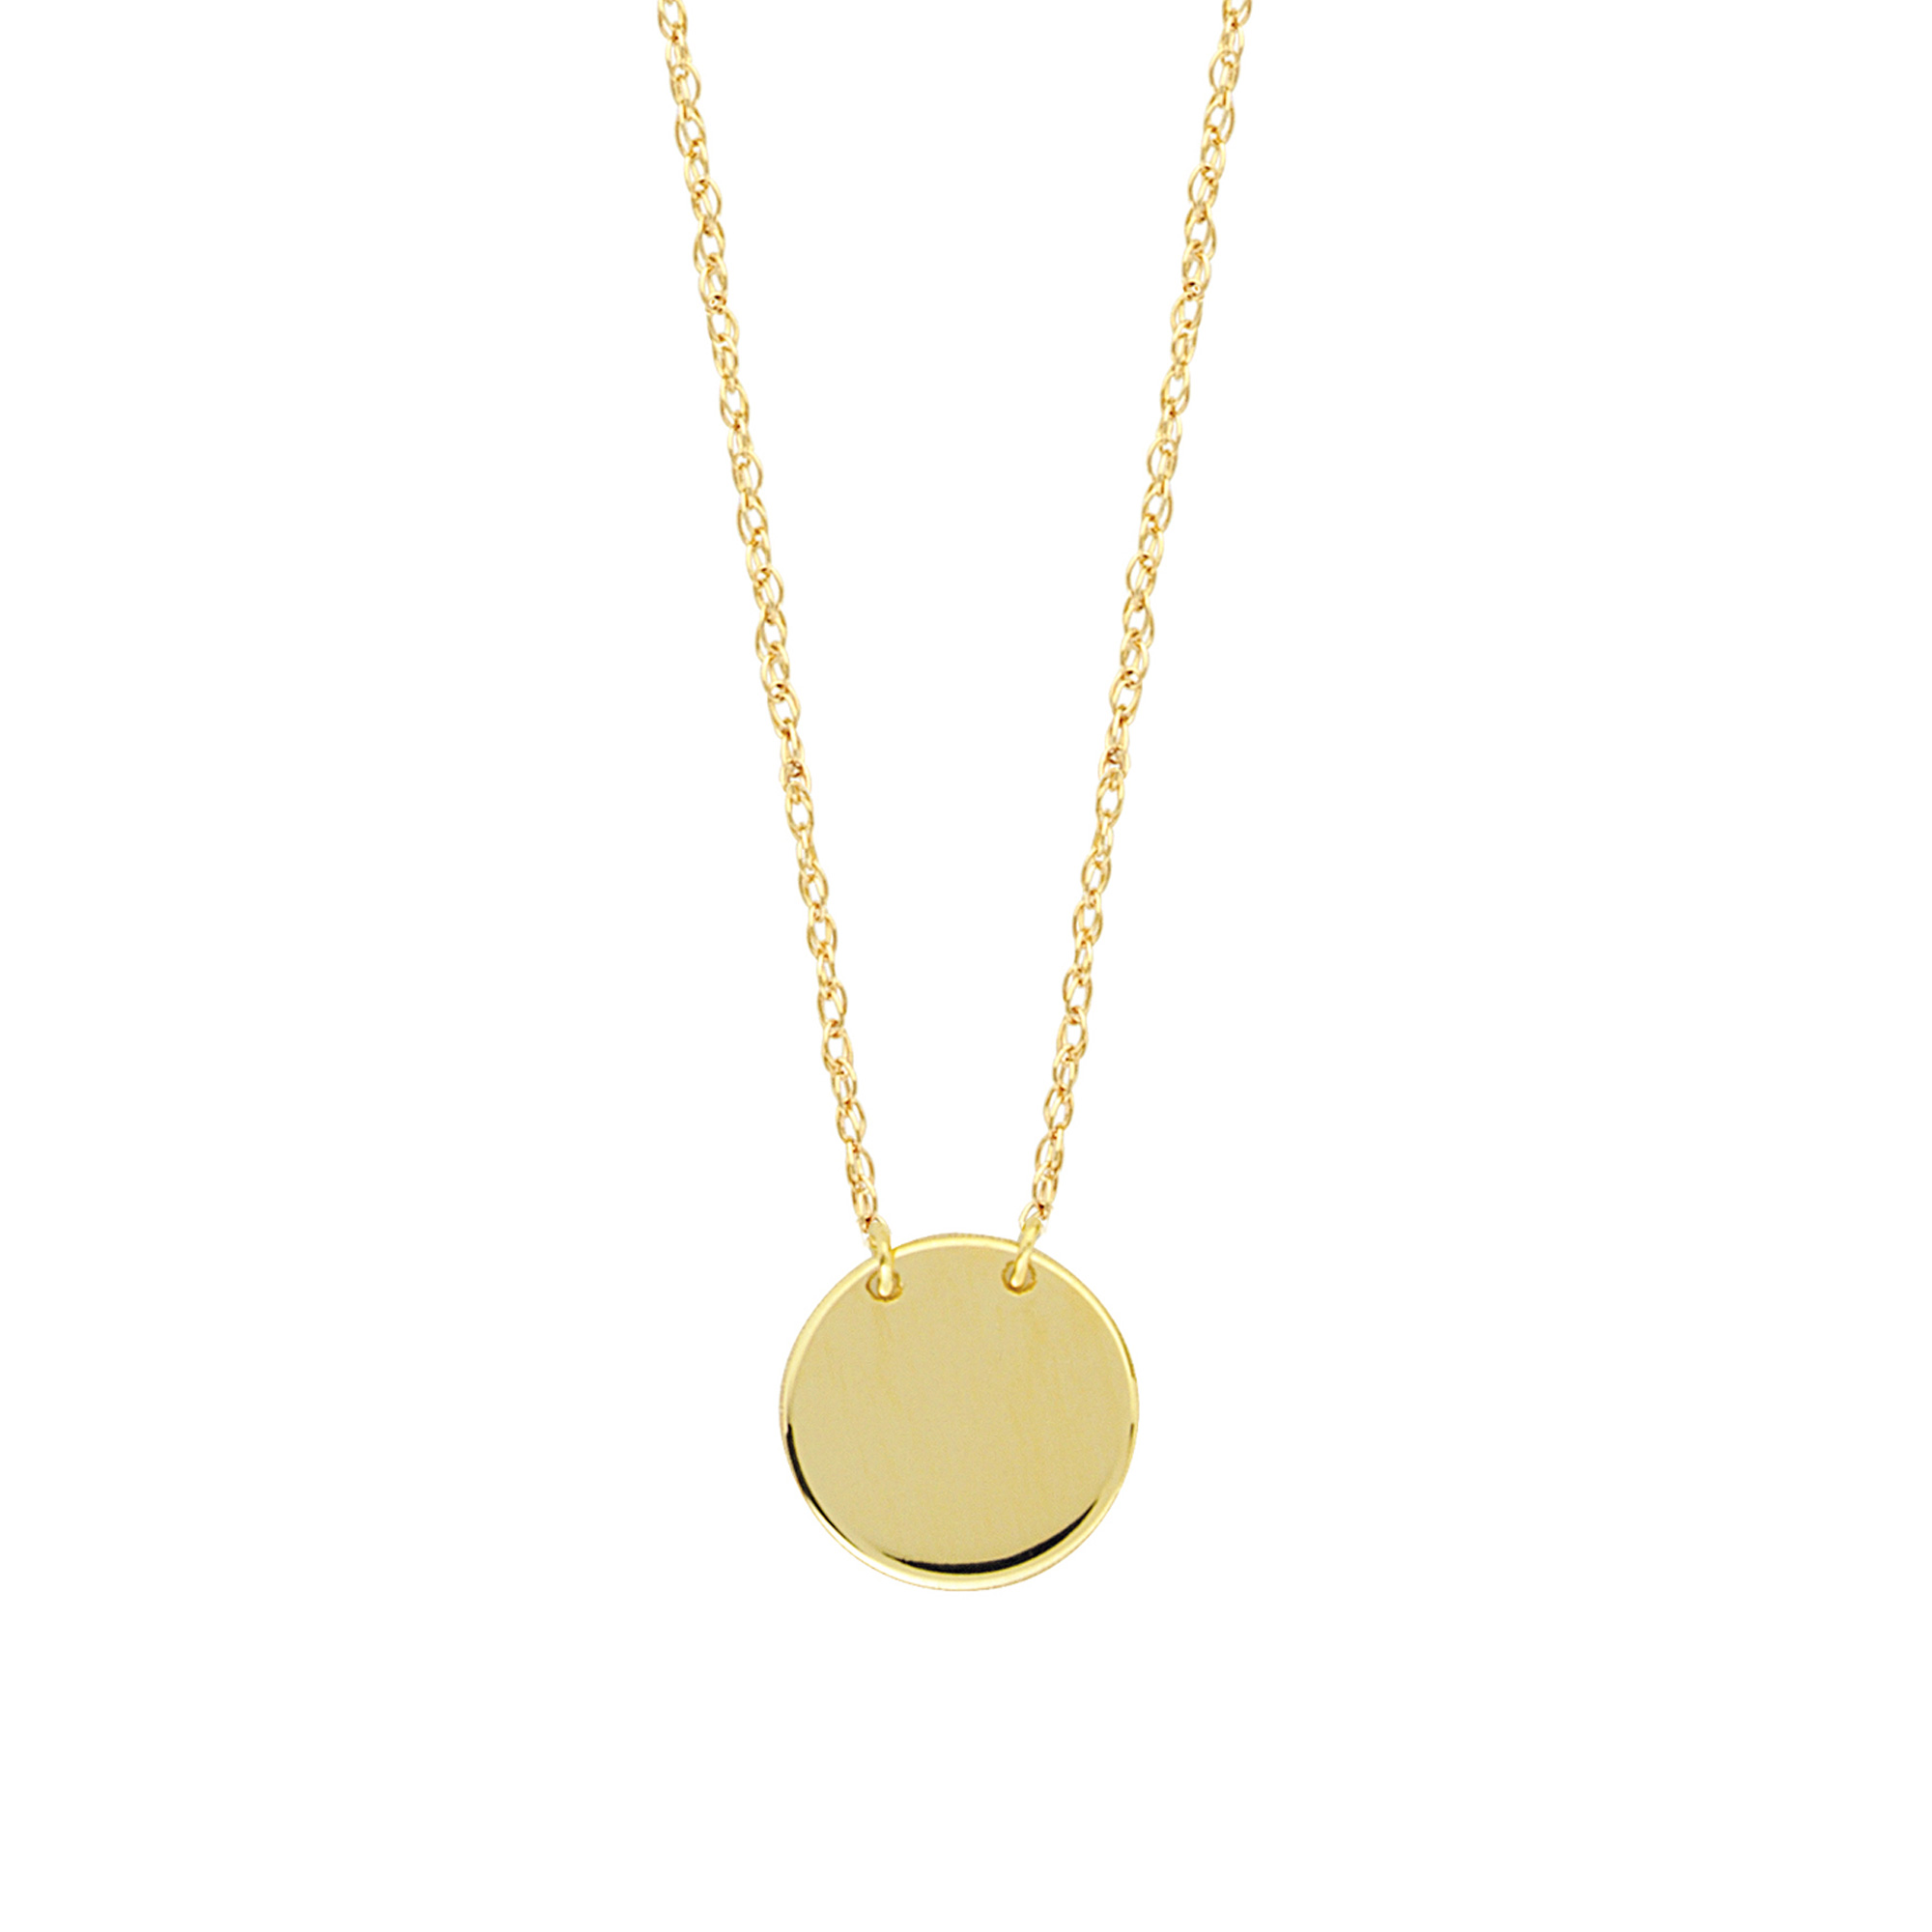 14k yellow gold disk pendant necklace 16 to 18 adjustable ebay 14k yellow gold mini engravable disk pendant necklace 16 to 18 adjustable aloadofball Images